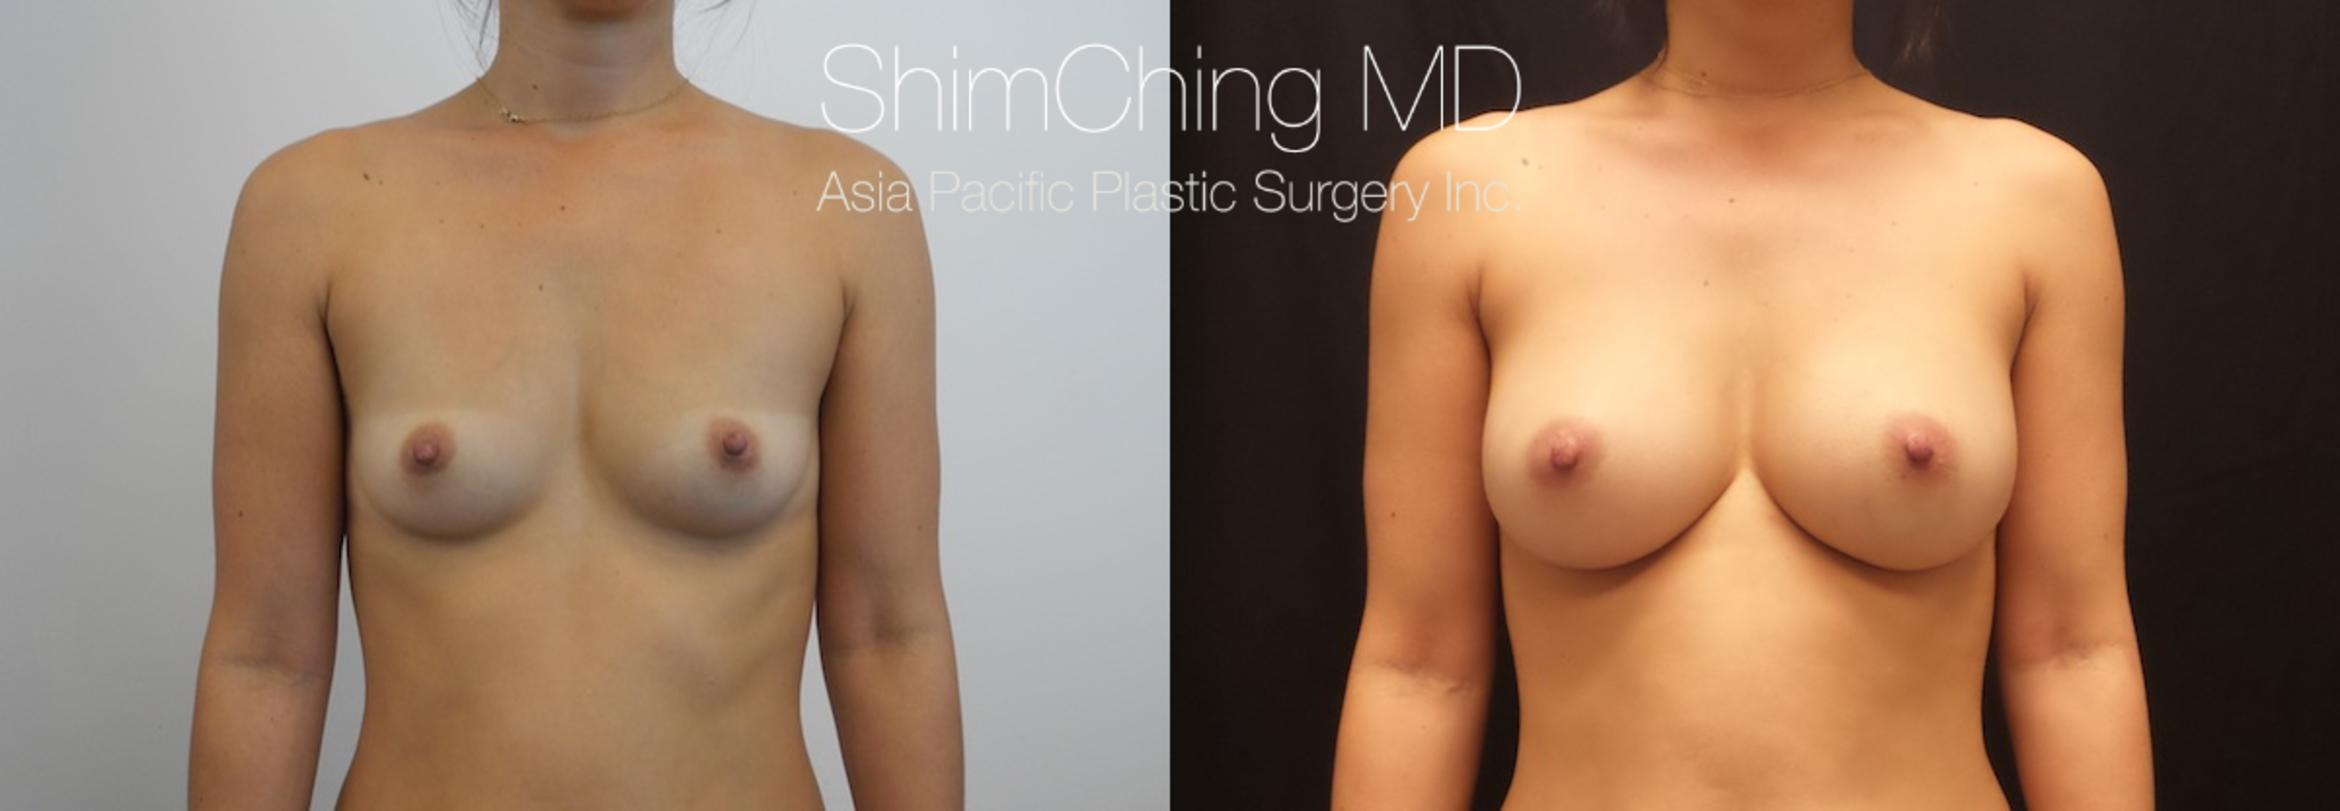 Homepage Featured Cases Case 167 Before & After View #1 | Honolulu, HI | Shim Ching, MD: Asia Pacific Plastic Surgery